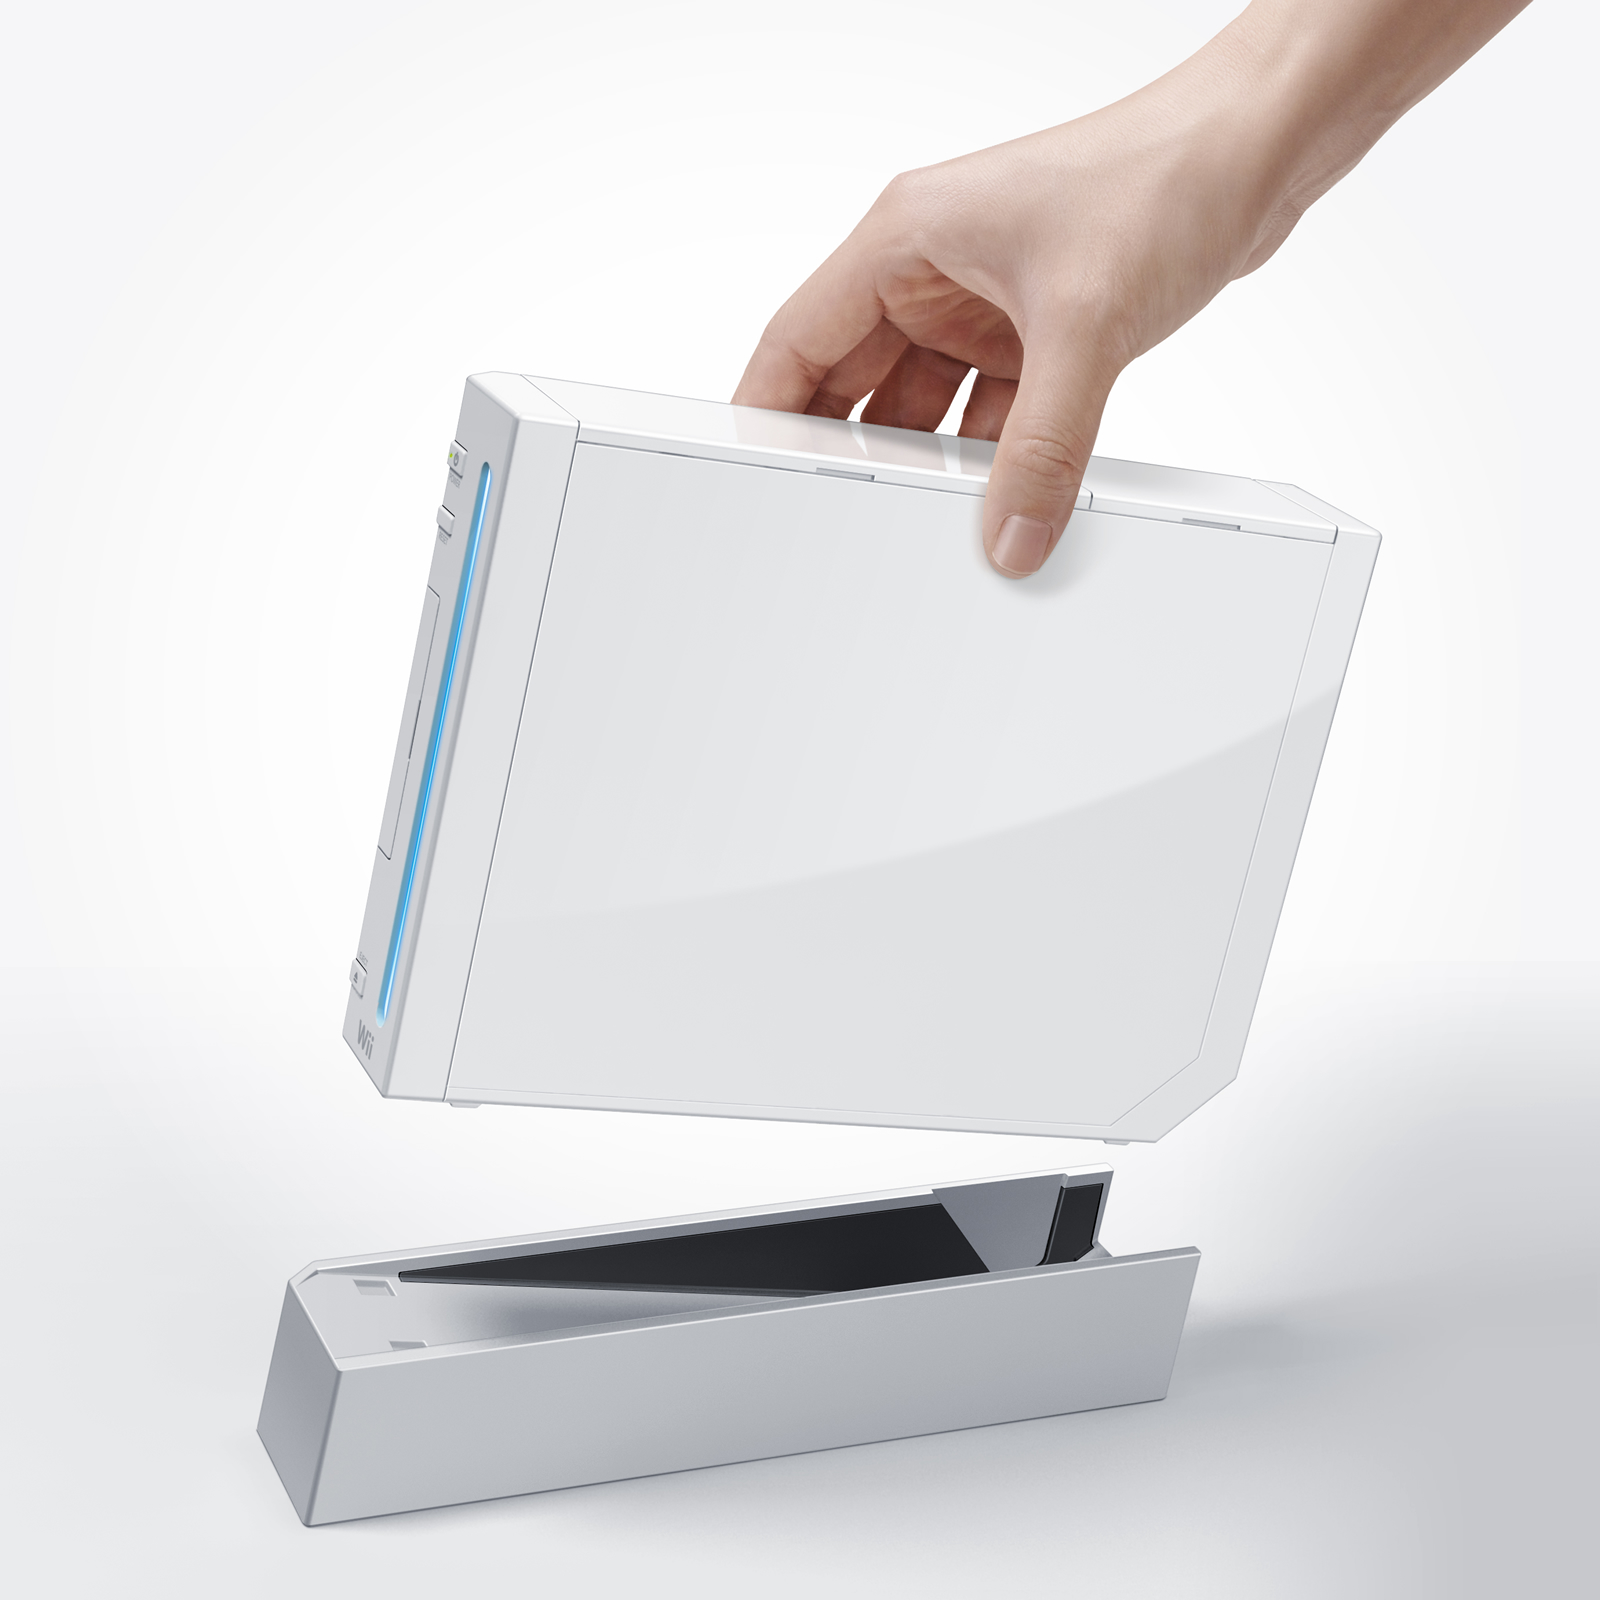 Nintendo Wii The Nintendo Wii Outsold Xbox 360 And